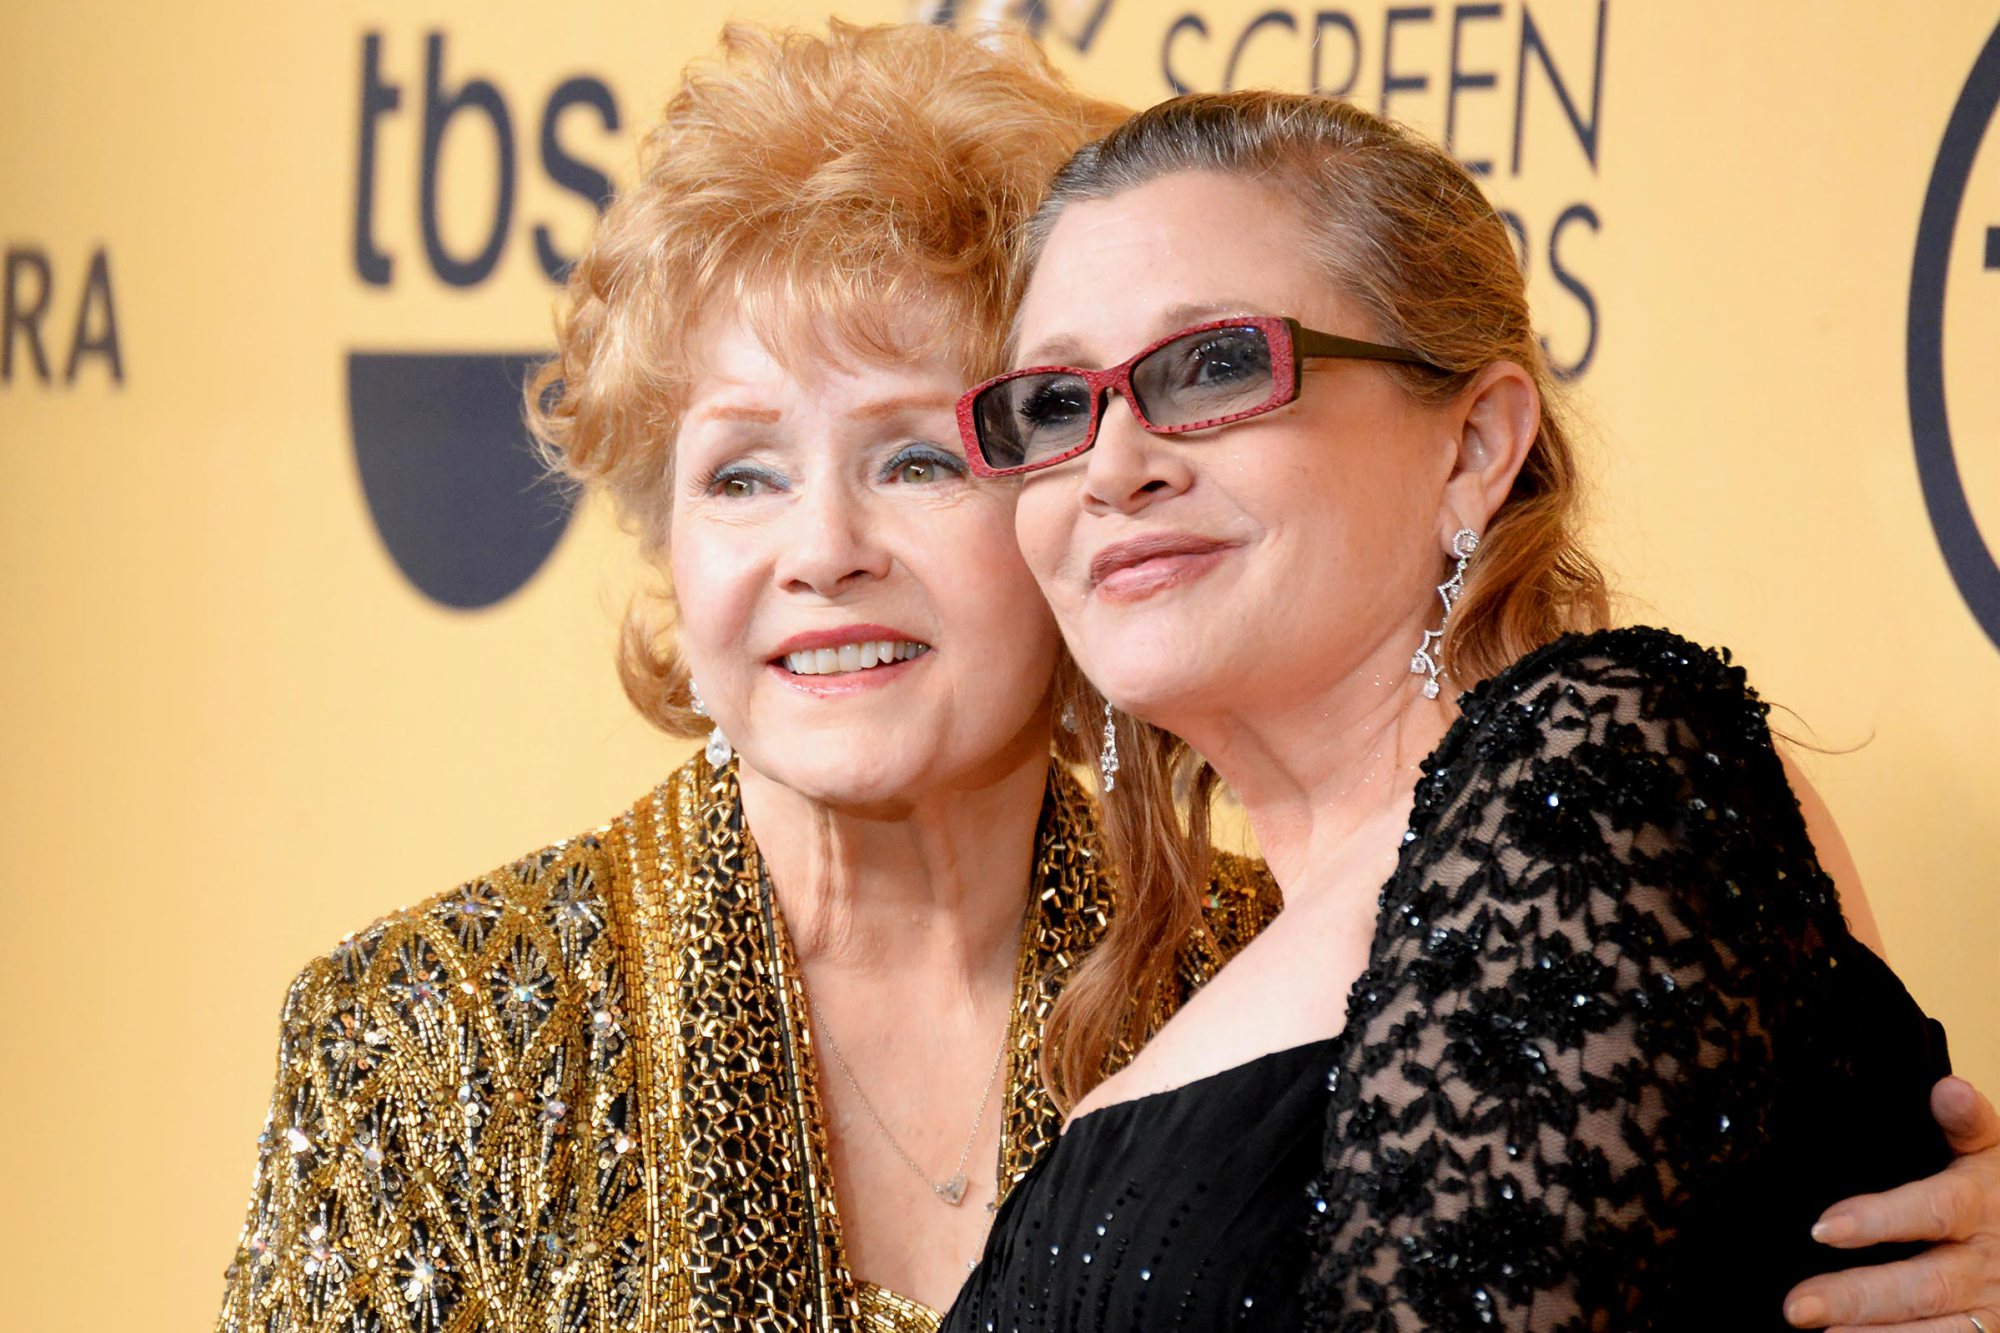 LOS ANGELES, CA - JANUARY 25:  Actresses Debbie Reynolds (L) and Carrie Fisher pose in the press room at the 21st Annual Screen Actors Guild Awards at The Shrine Auditorium on January 25, 2015 in Los Angeles, California.  (Photo by Jeff Kravitz/FilmMagic)